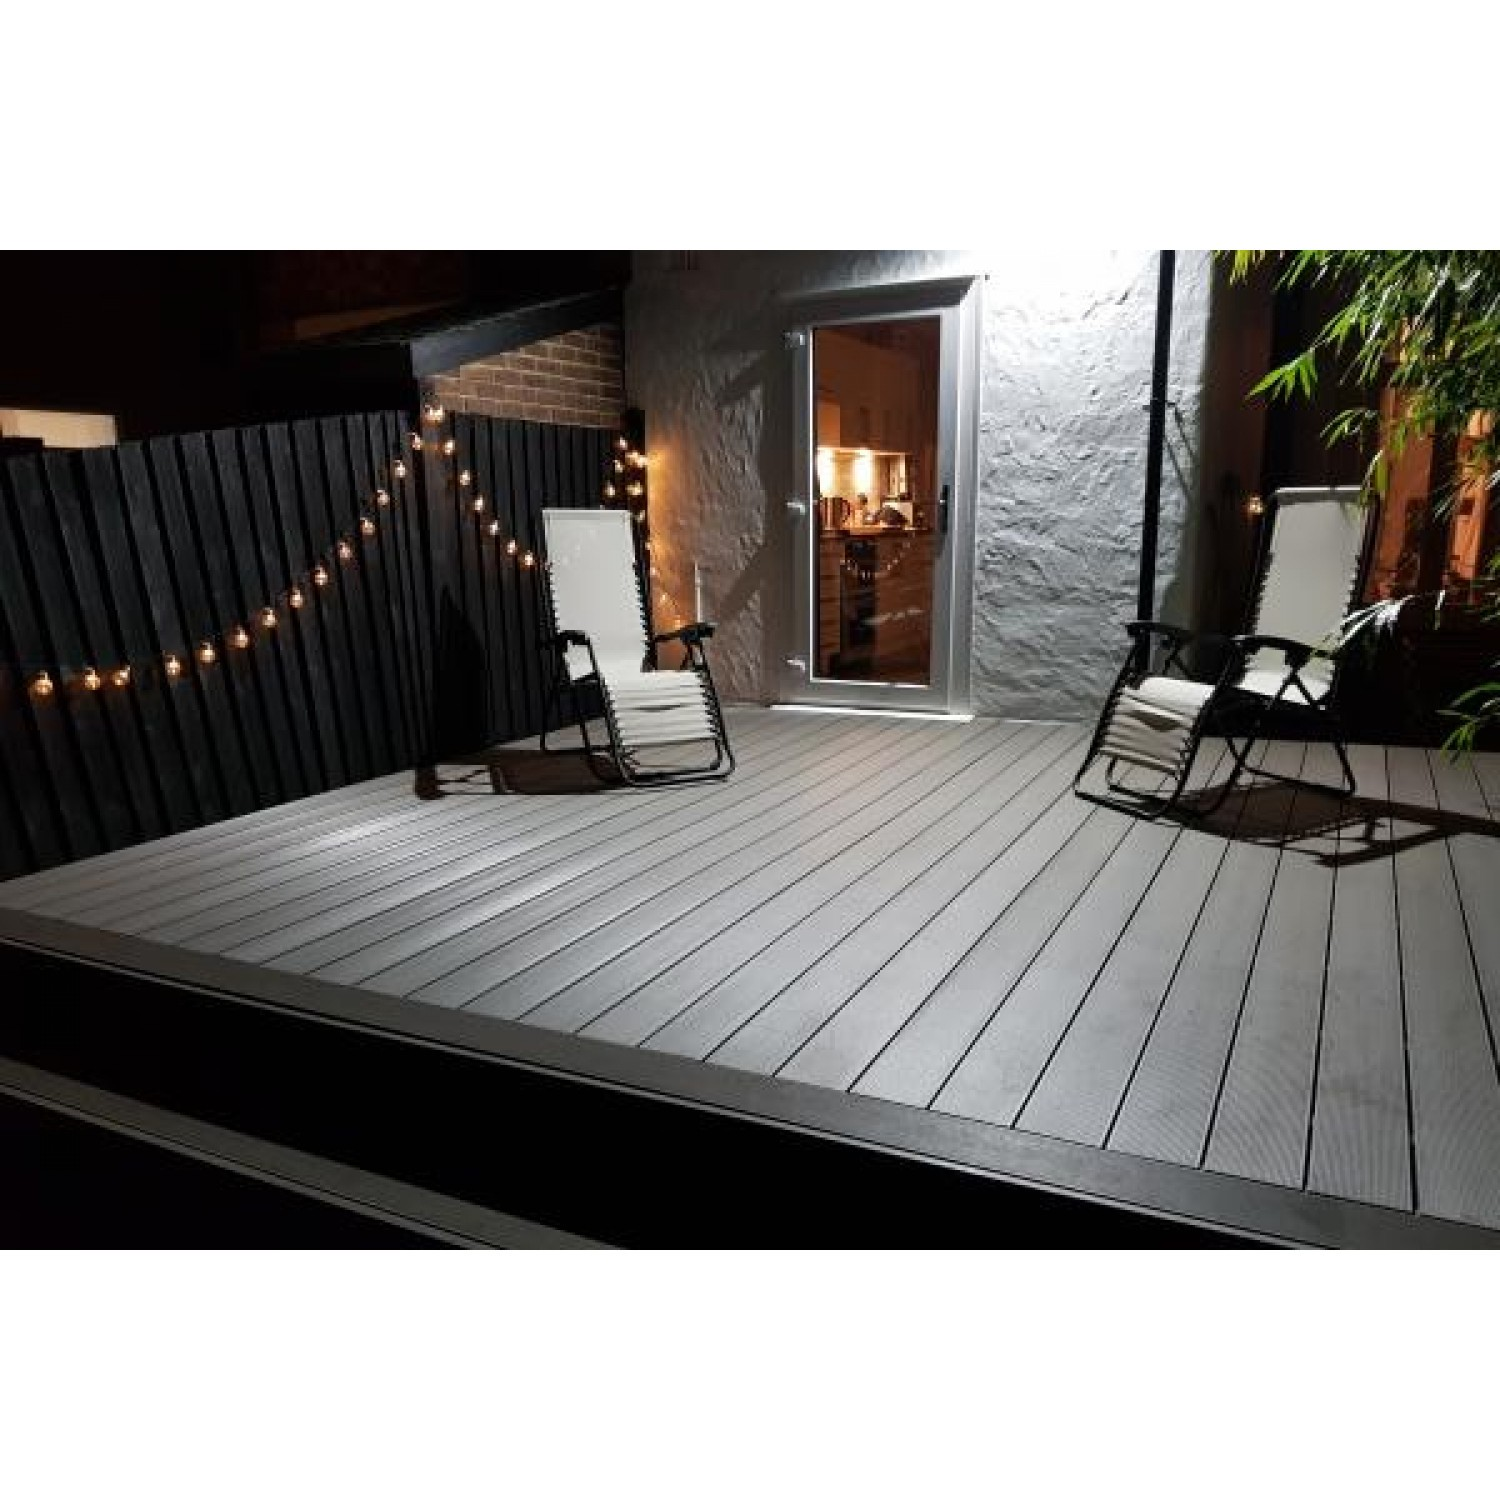 Solid Composite Decking Boards - 150mm x 25mm